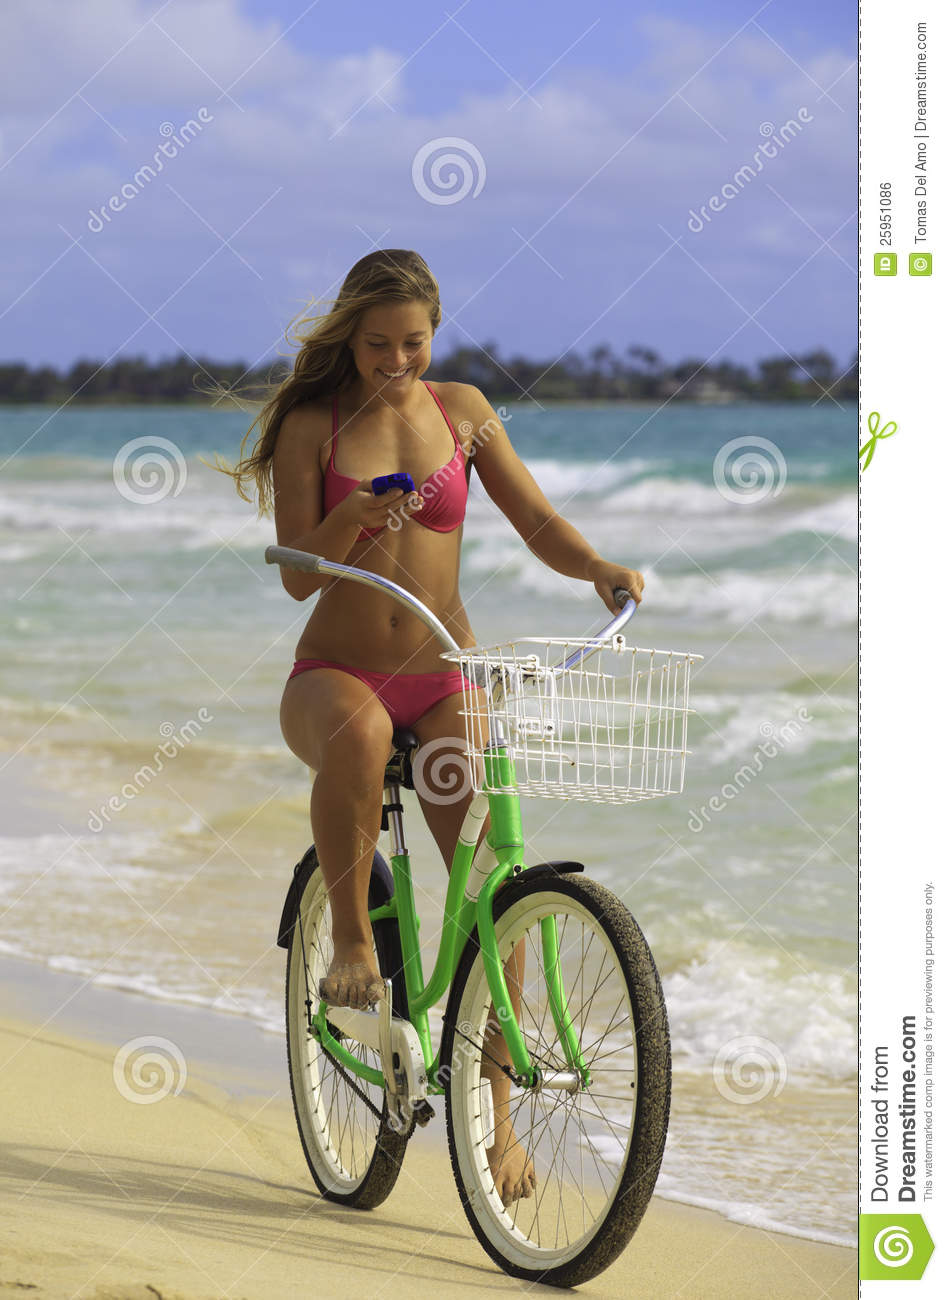 Biker Girl Wallpaper Free Download Girl On Bike At Beach Texting Stock Photo Image Of Waves